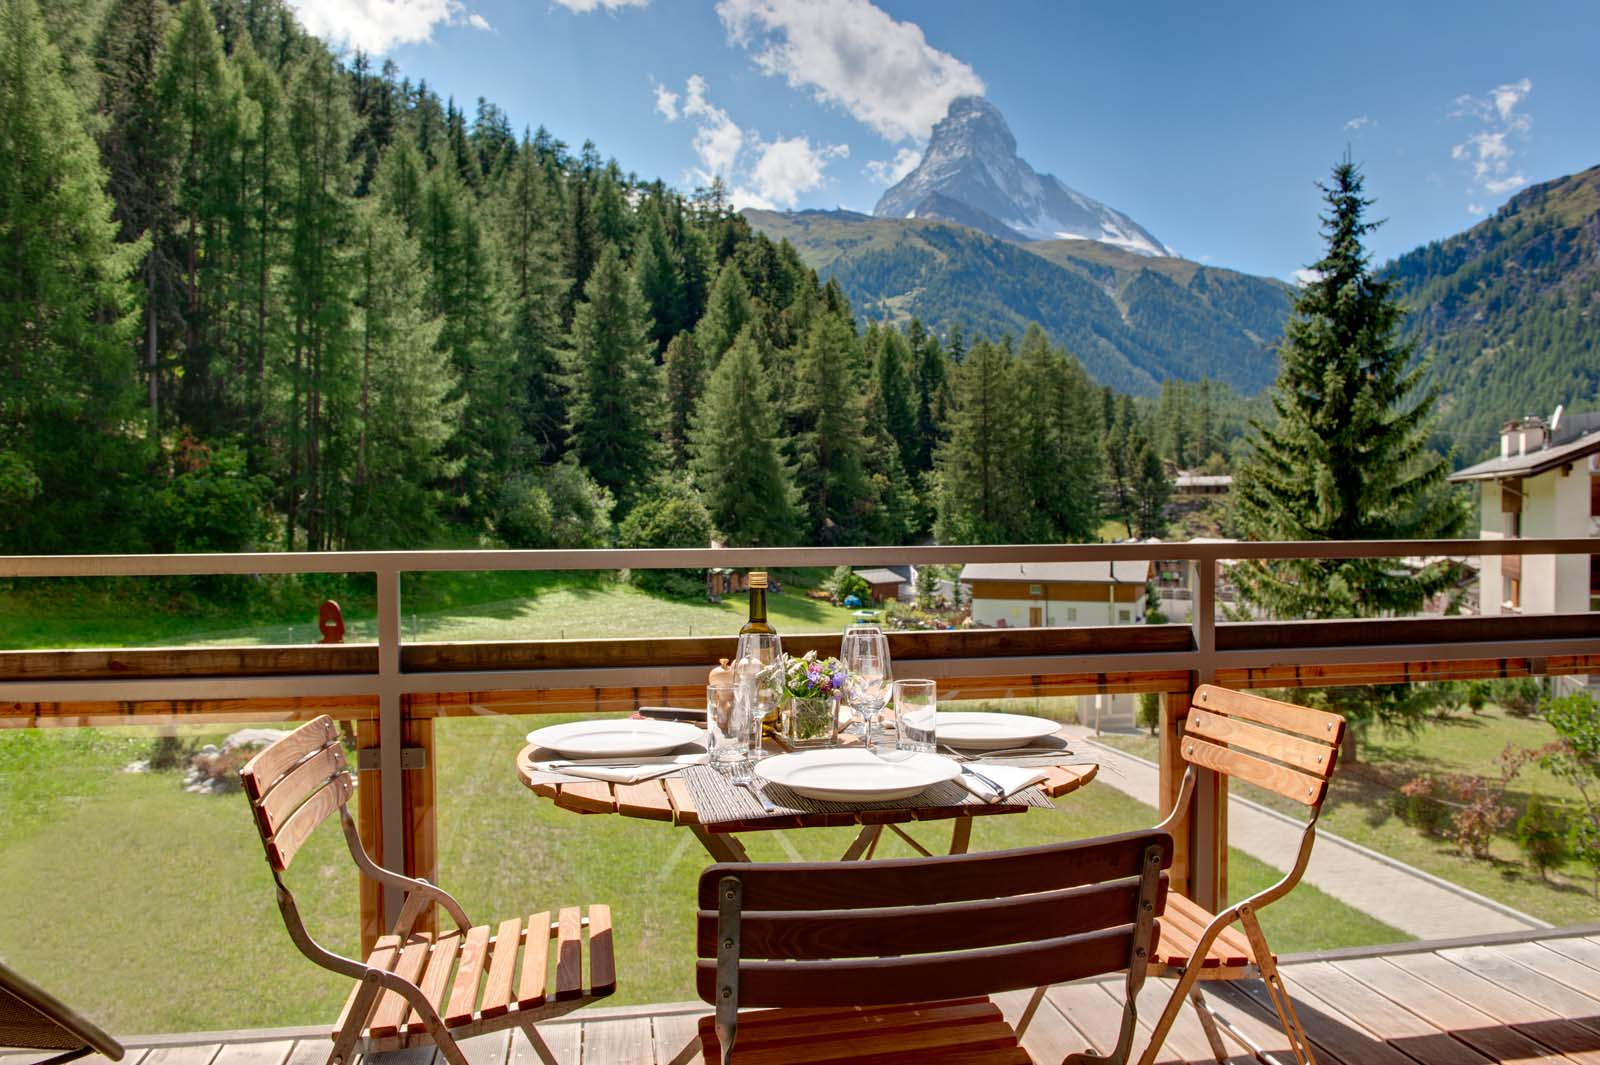 Chalet altesse balcony view in summer